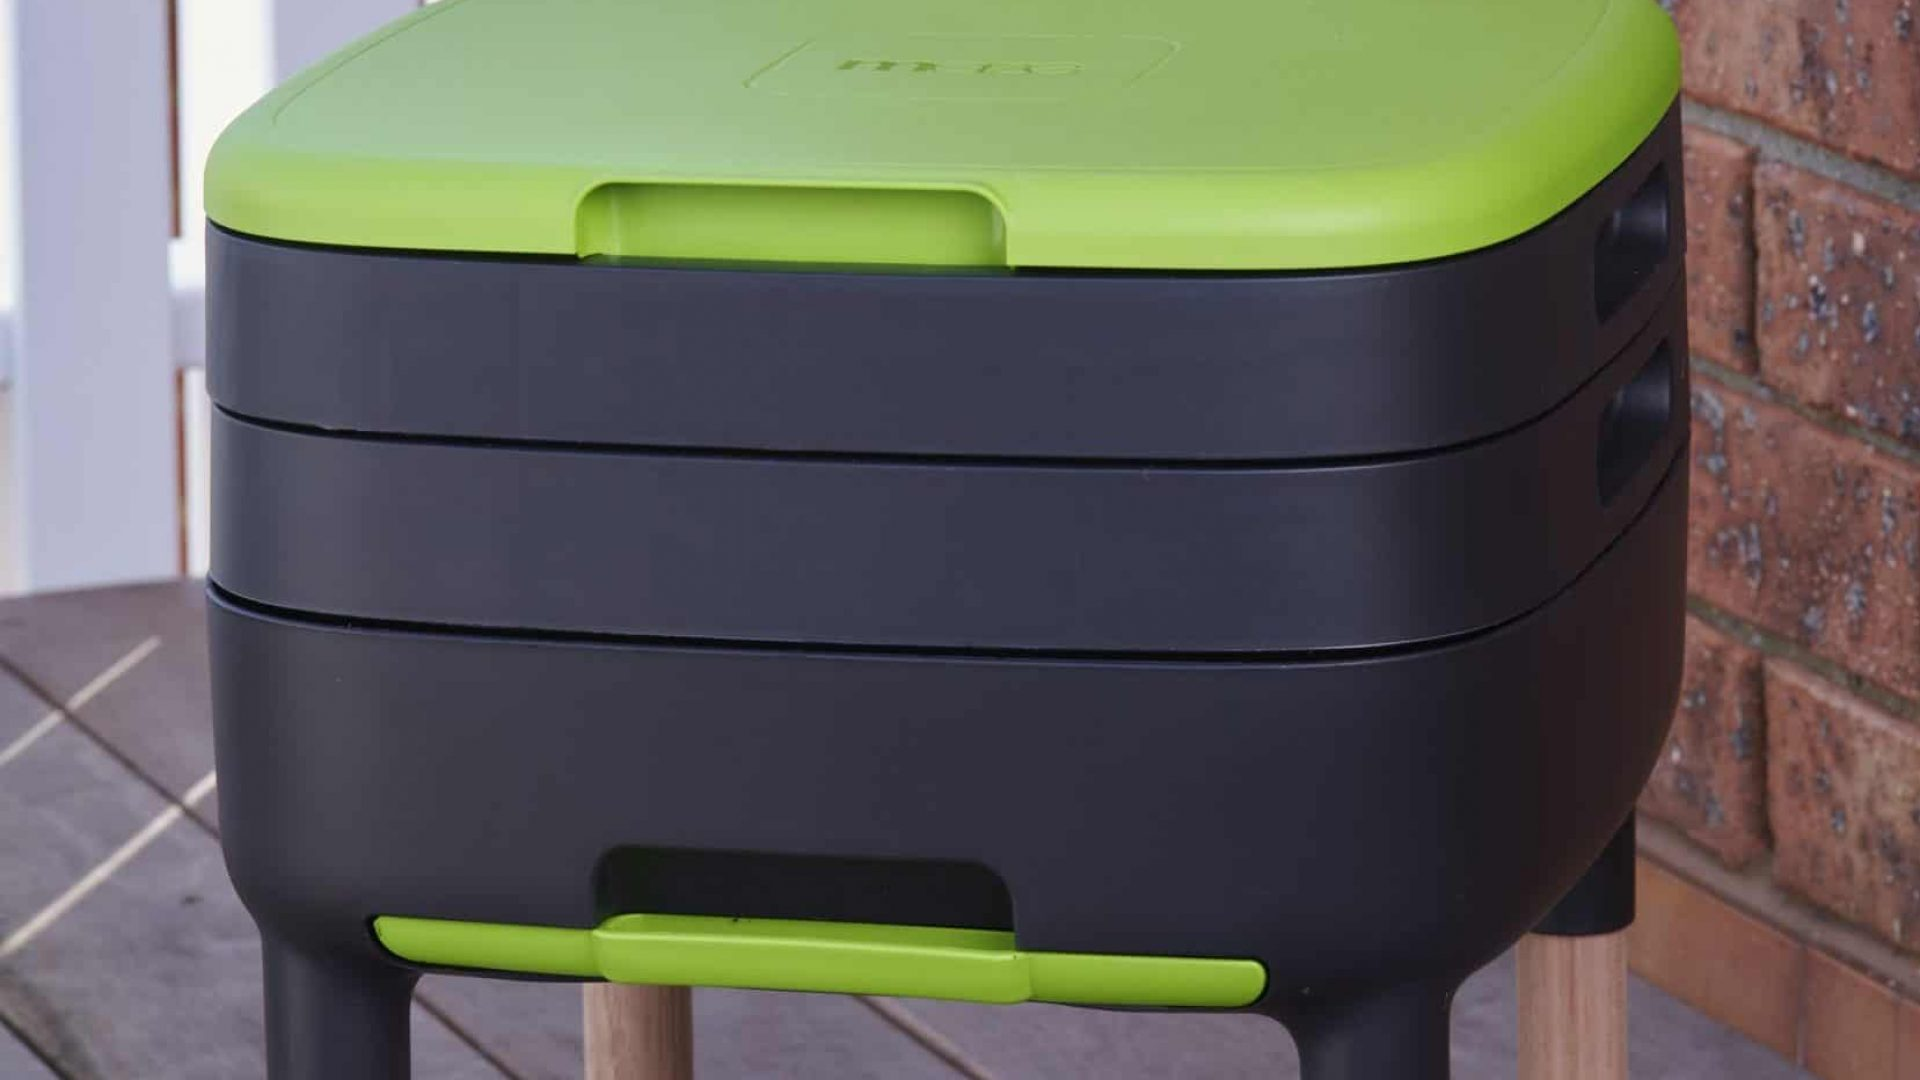 Best Indoor Worm Composters: 6 Mess-Free & Stylish Options